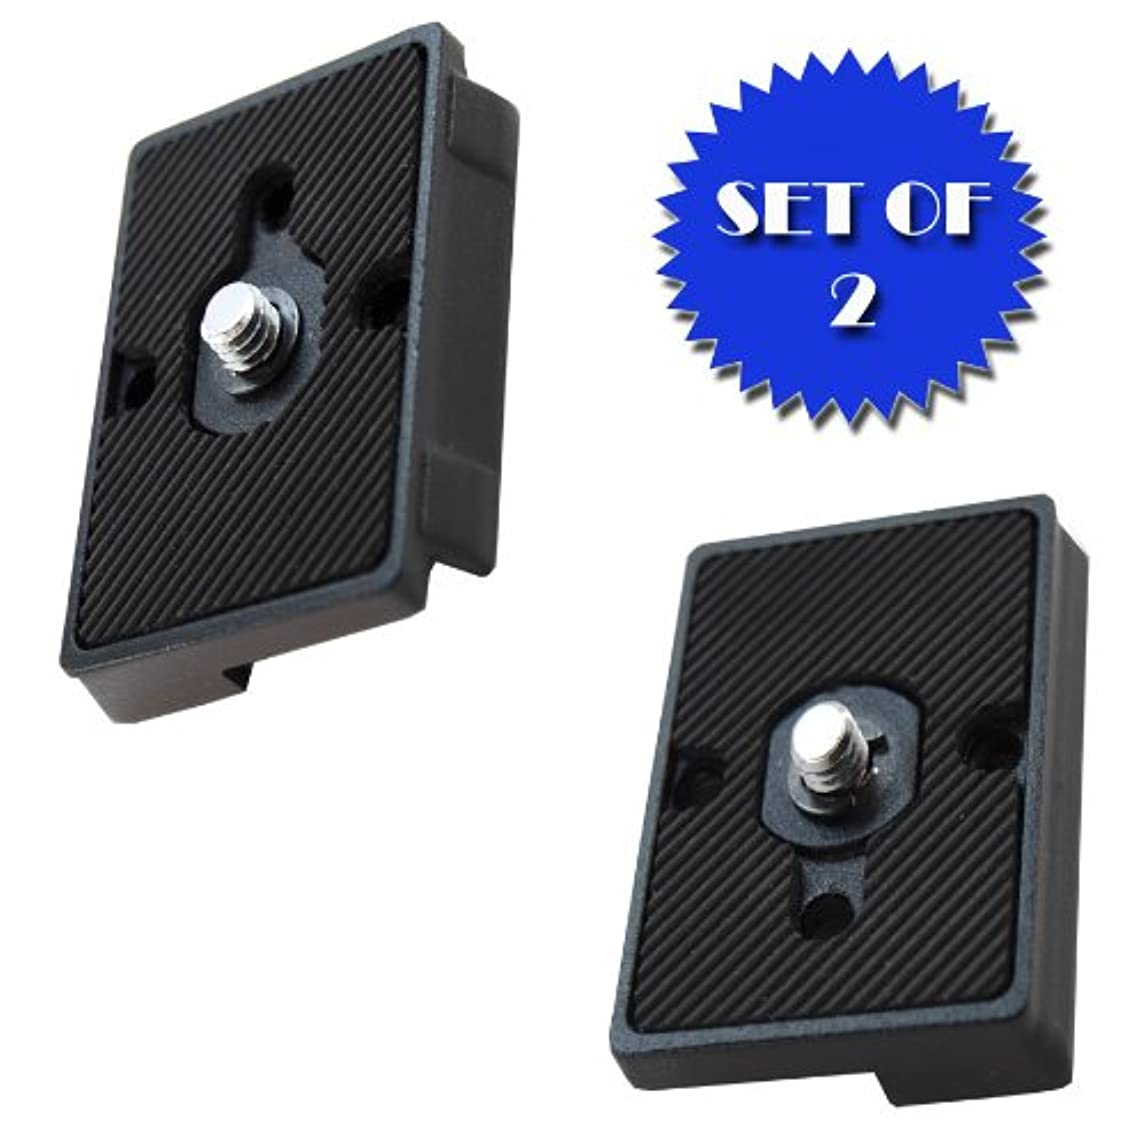 Quick Release Plate for The RC2 Rapid Connect Adapter (Set of 2) for MANFROTTO 700RC2